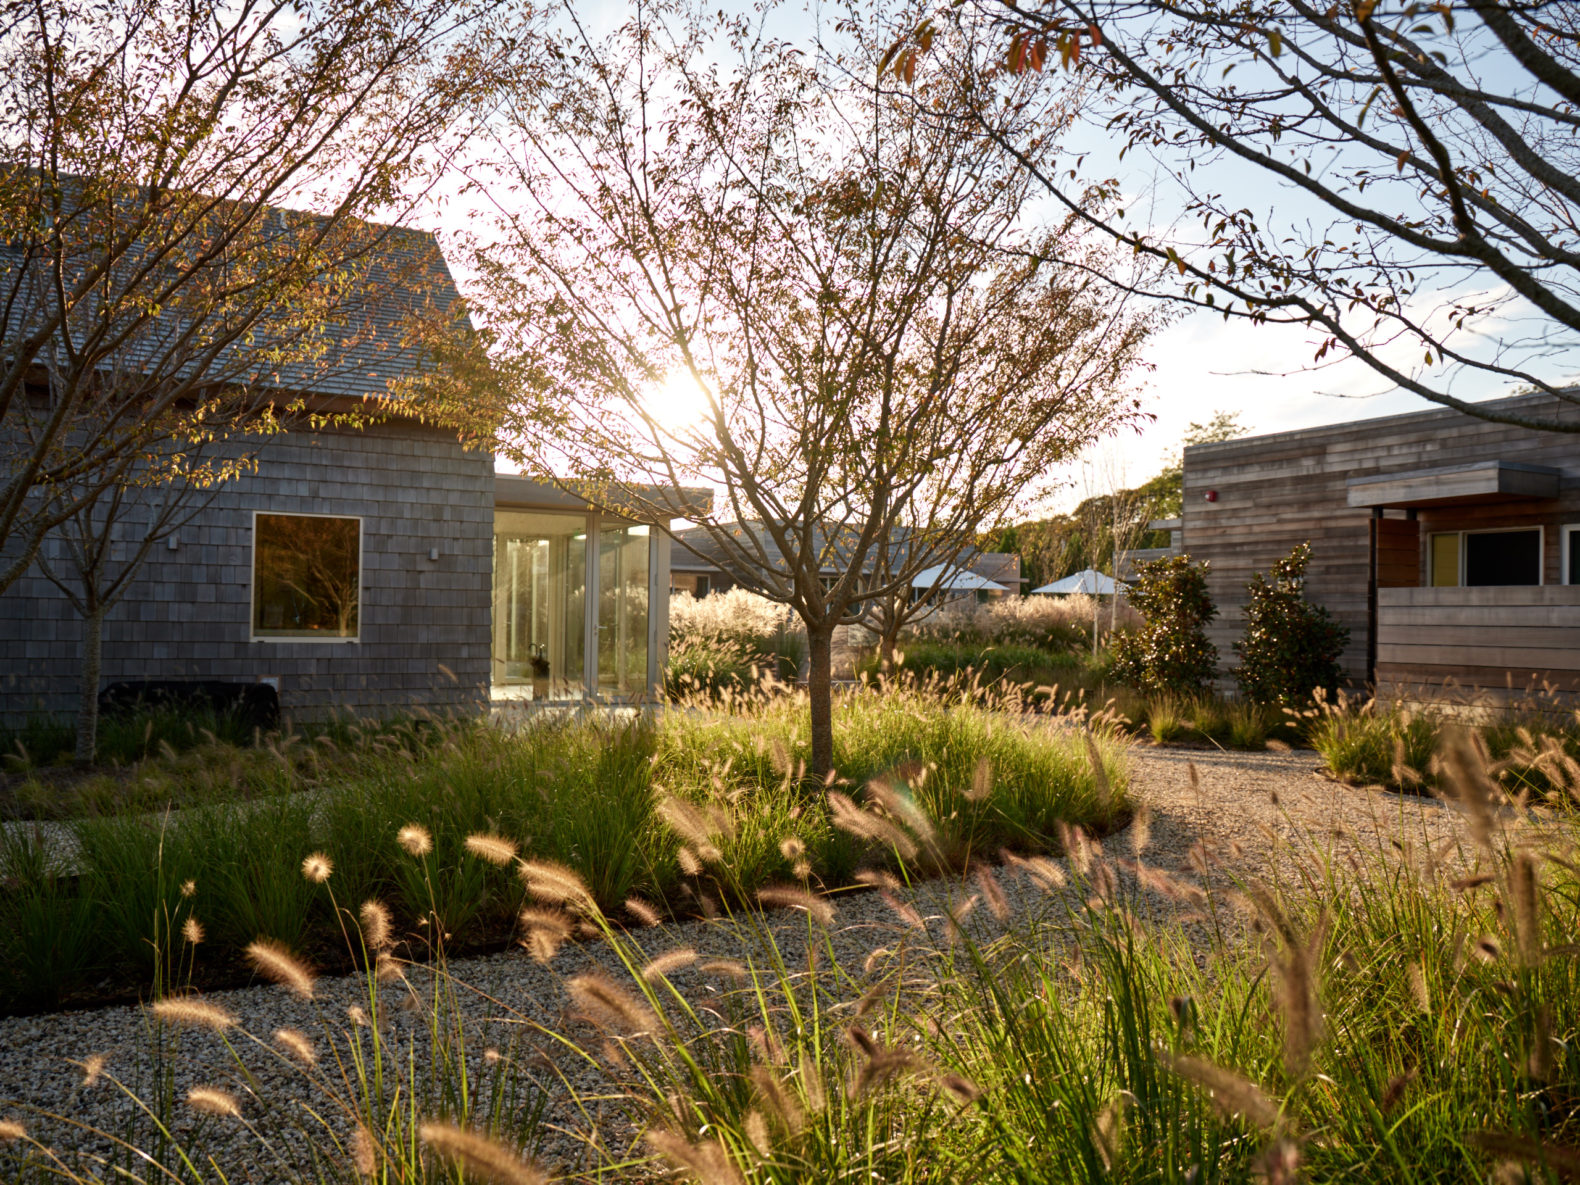 guest-exterior-outdoor-nature-shou-sugi-ban-house-new-york-hamptons-usa